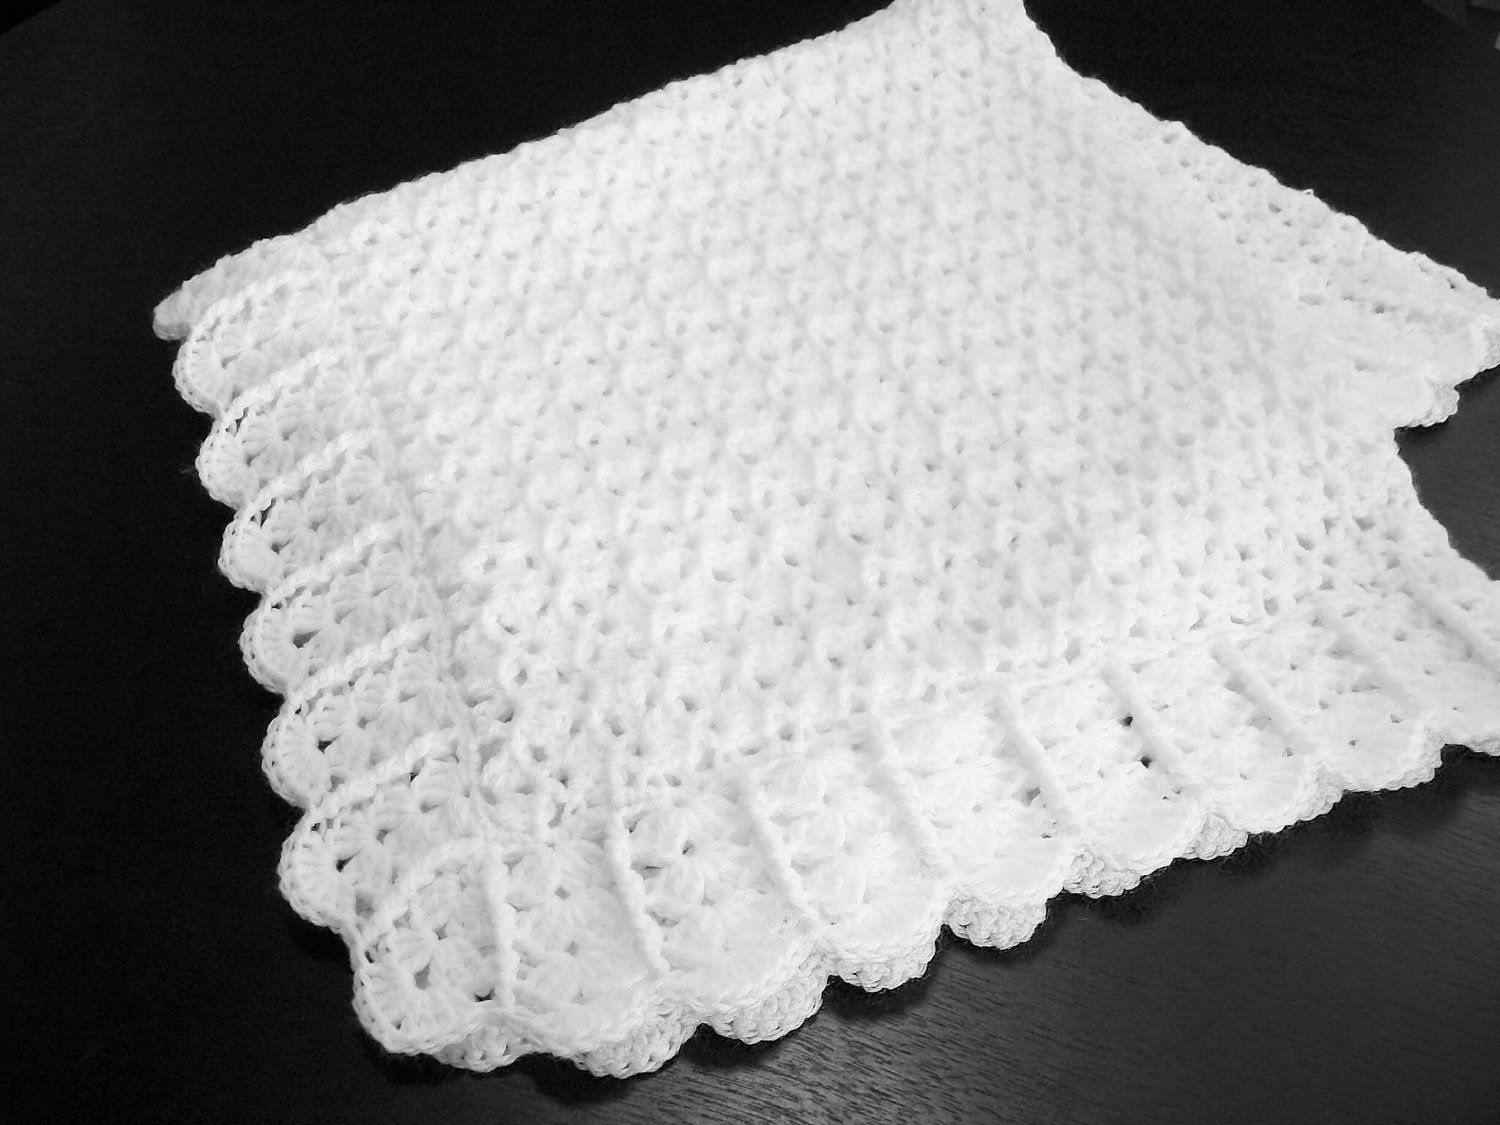 Crochet Patterns Of Baby Blankets : Crochet Baby Blanket White Christening Baptism Newborn ...